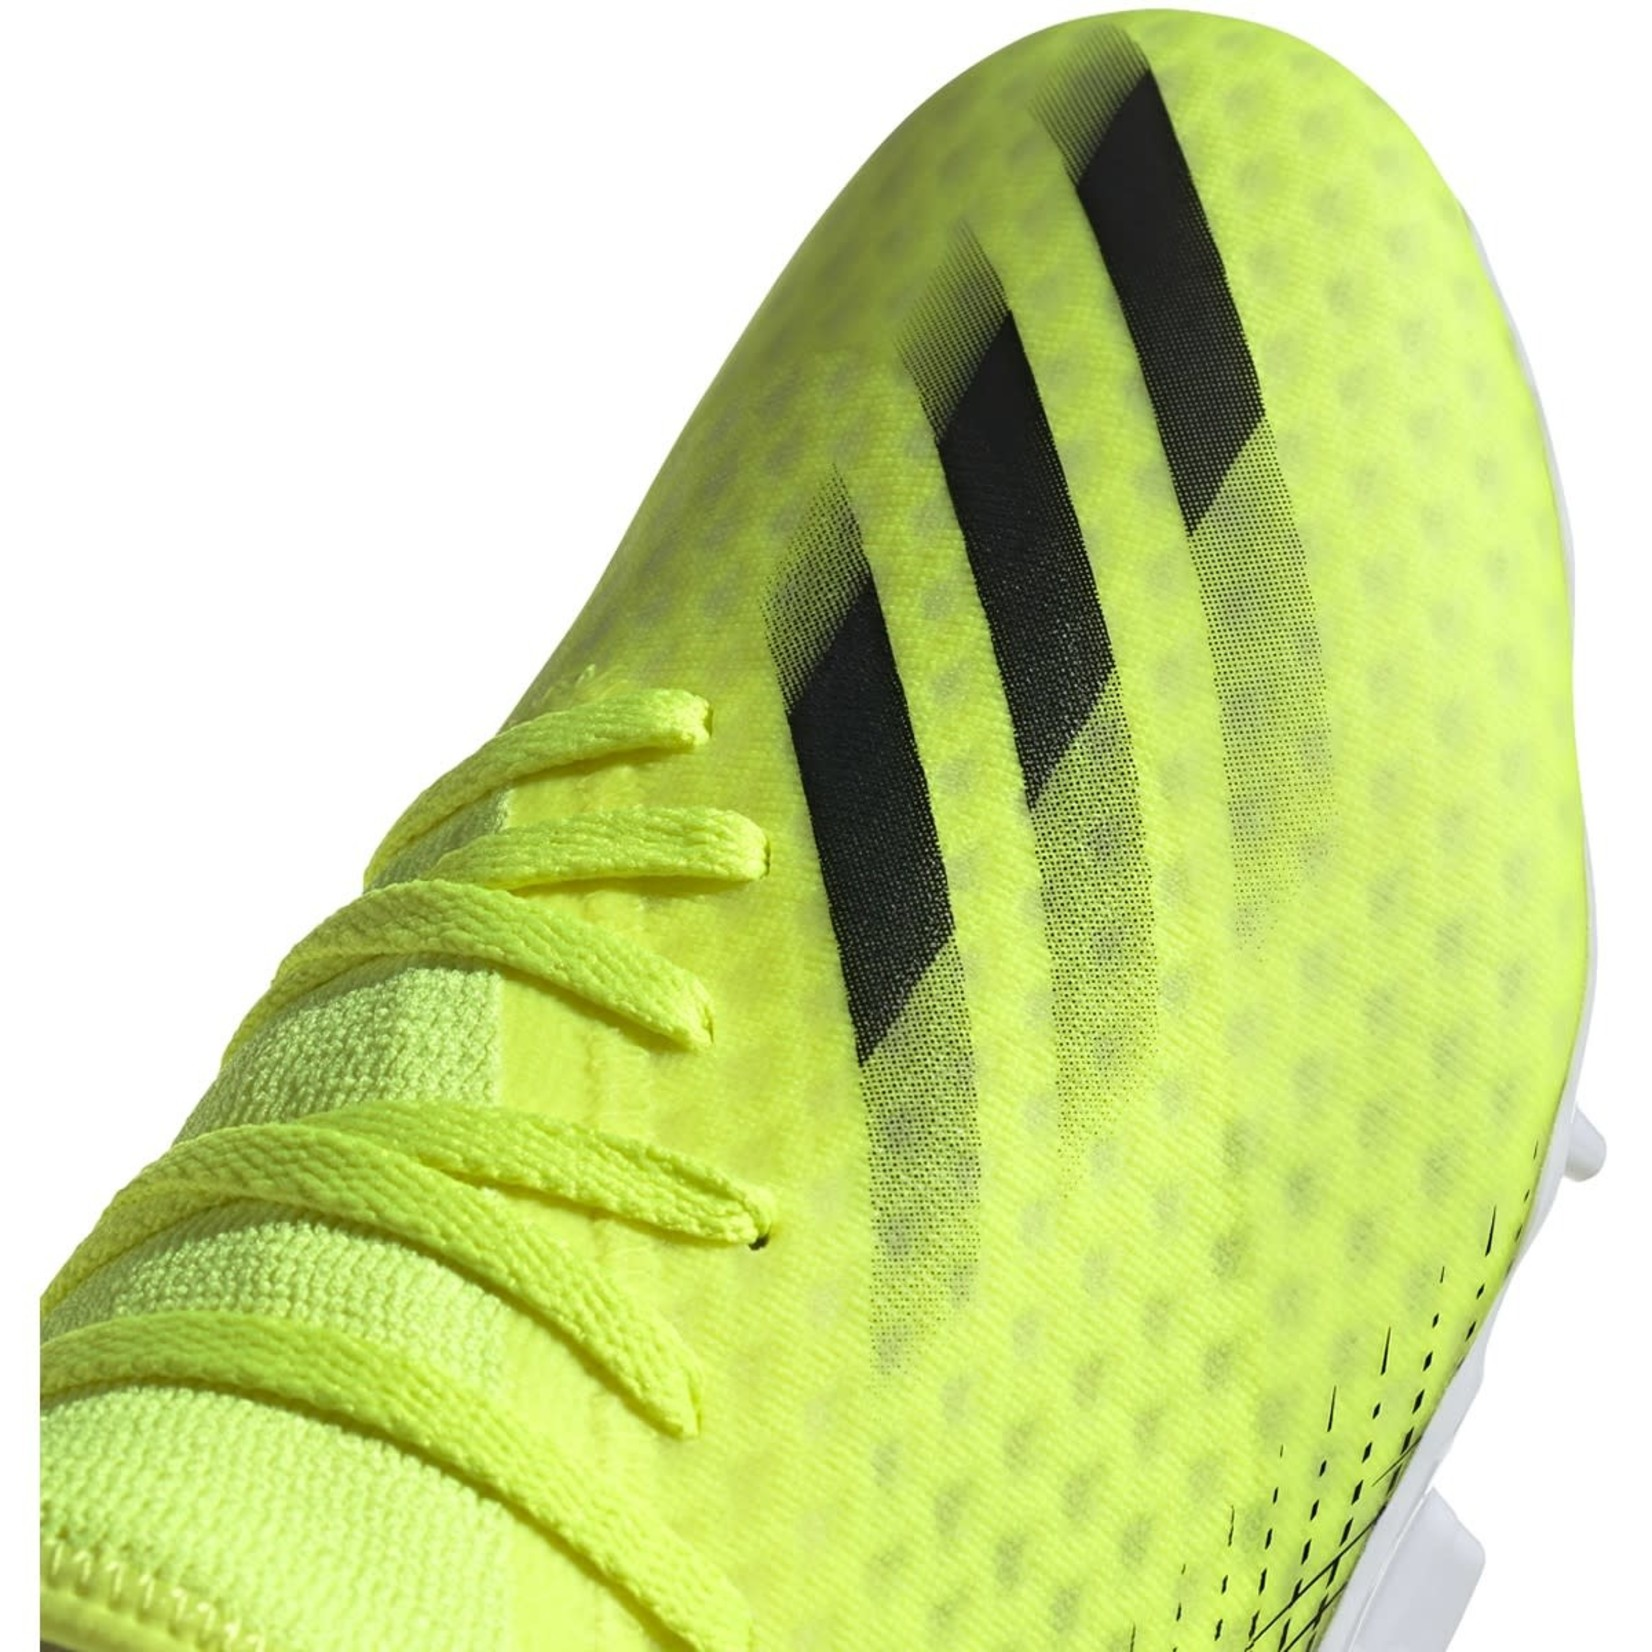 ADIDAS X GHOSTED.3 FG (YELLOW/BLACK)